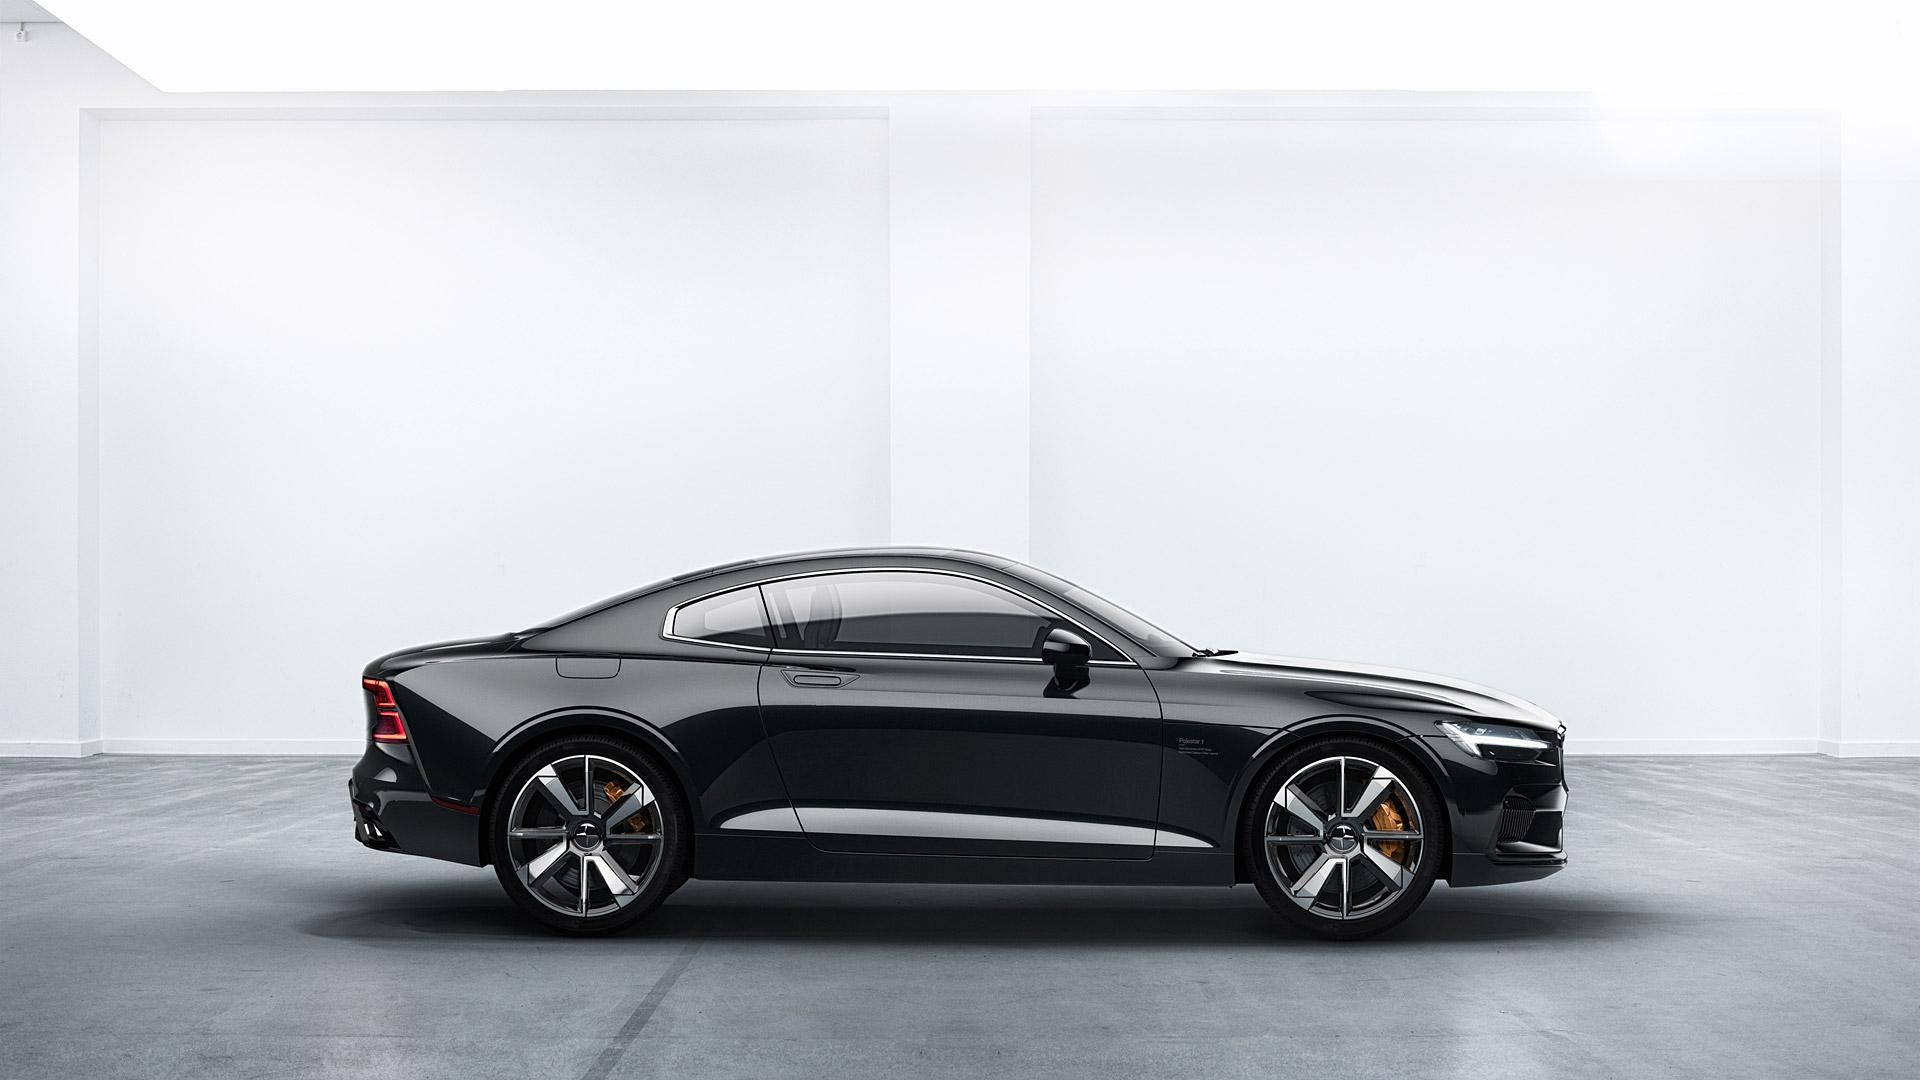 2020 Polestar 1 Wallpapers & HD Images - WSupercars